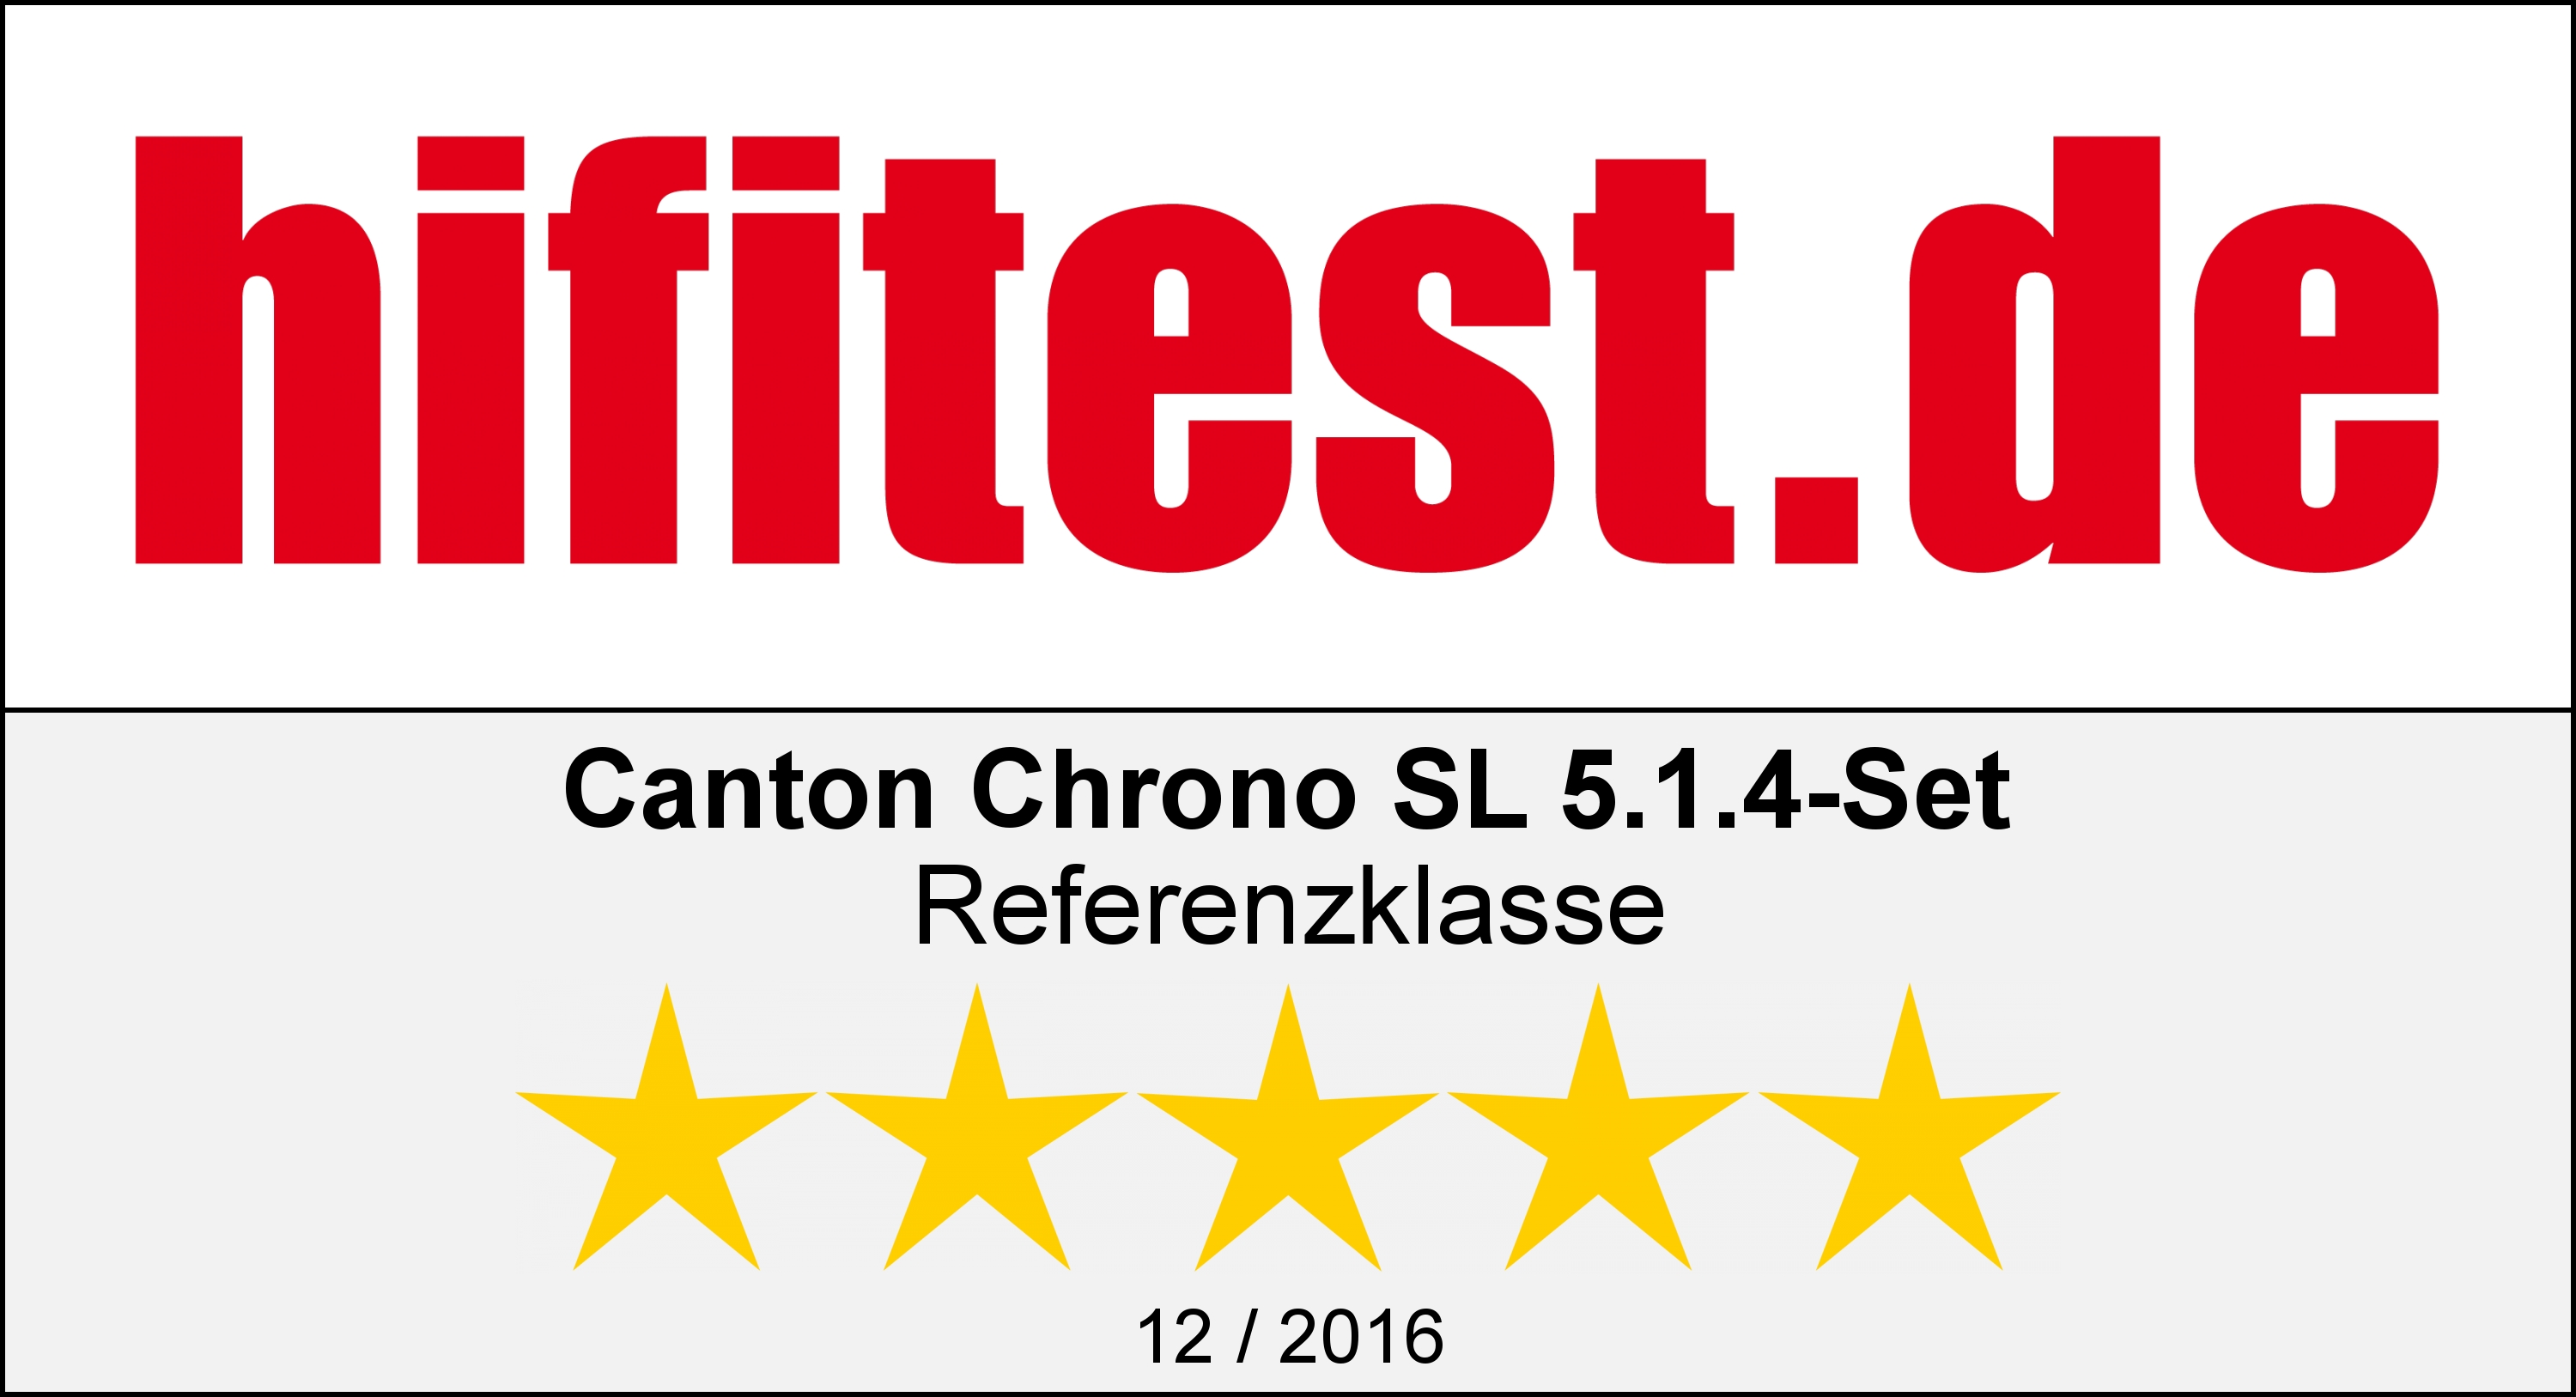 Chrono_SL_Set_hifitest-de_Referenzklasse